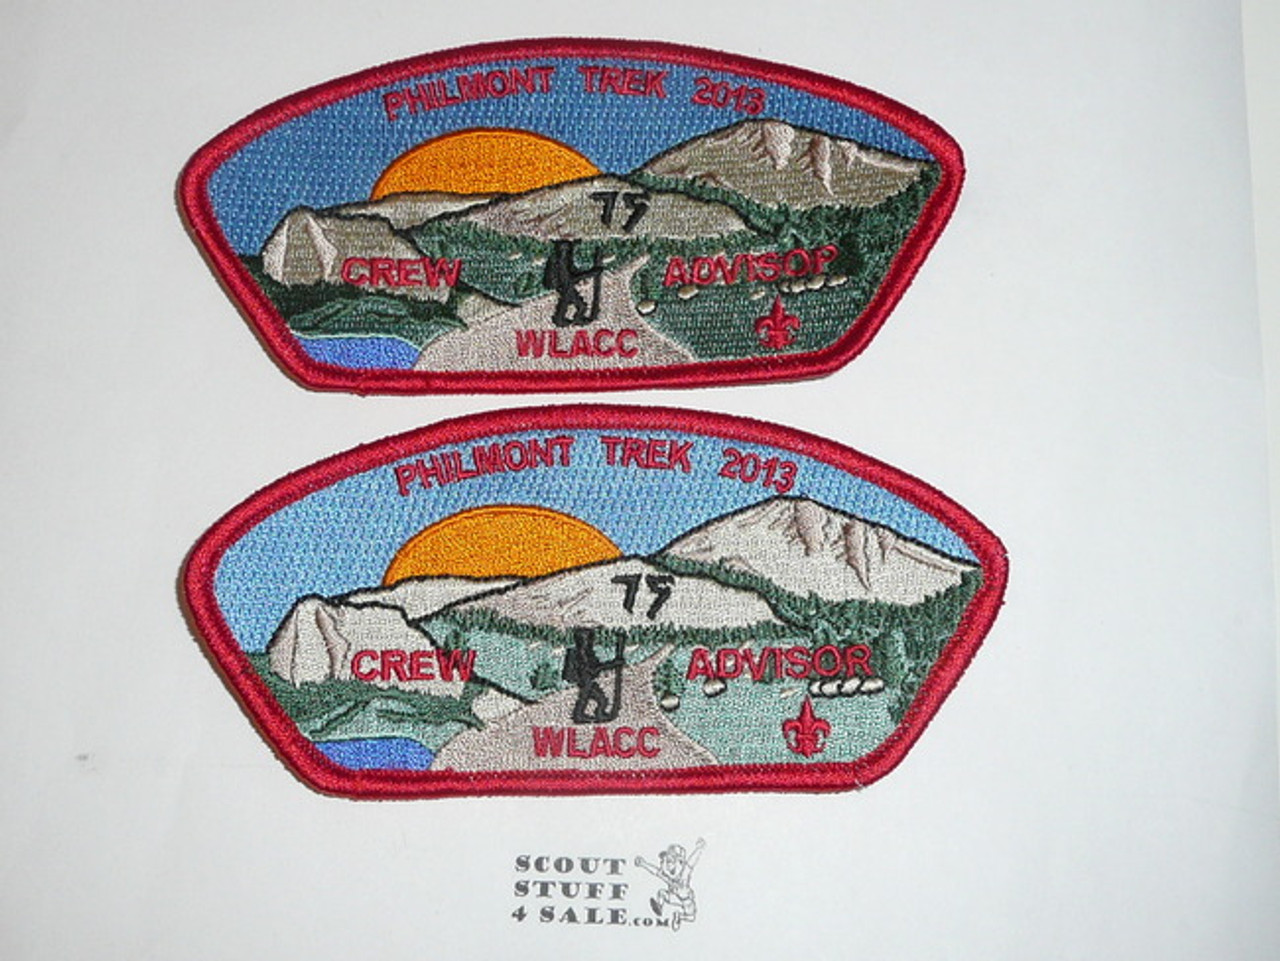 Western L.A. County Council Philmont 75th Anniv Contingent CSP Set, SA58-SA62